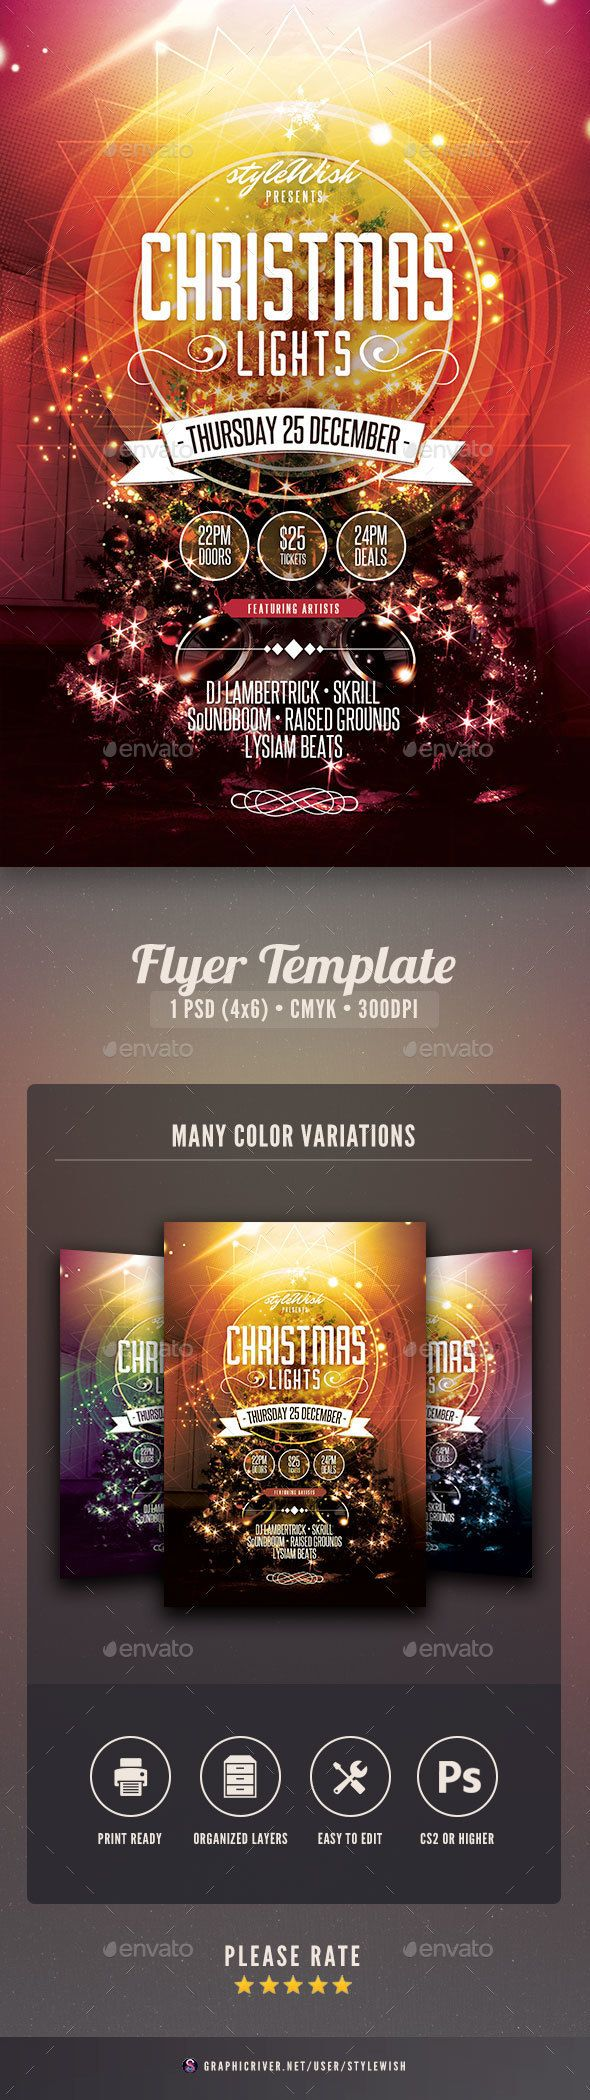 Christmas Lights Flyer Templatethis Flyer Template Is Designed To